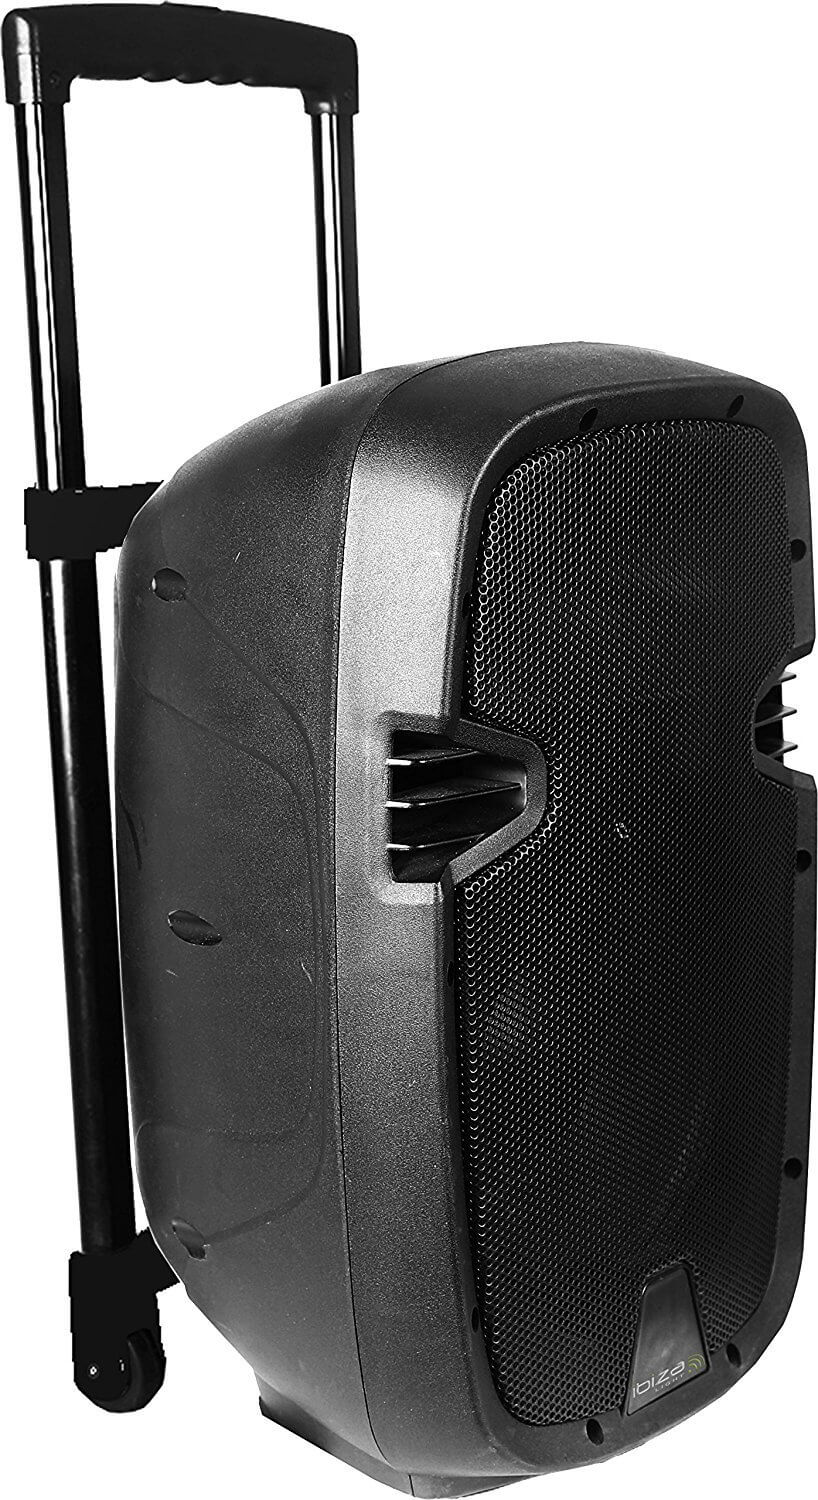 "Ibiza Hybrid 12"" Portable Battery PA Speaker System inc Wireless Handheld Mics"